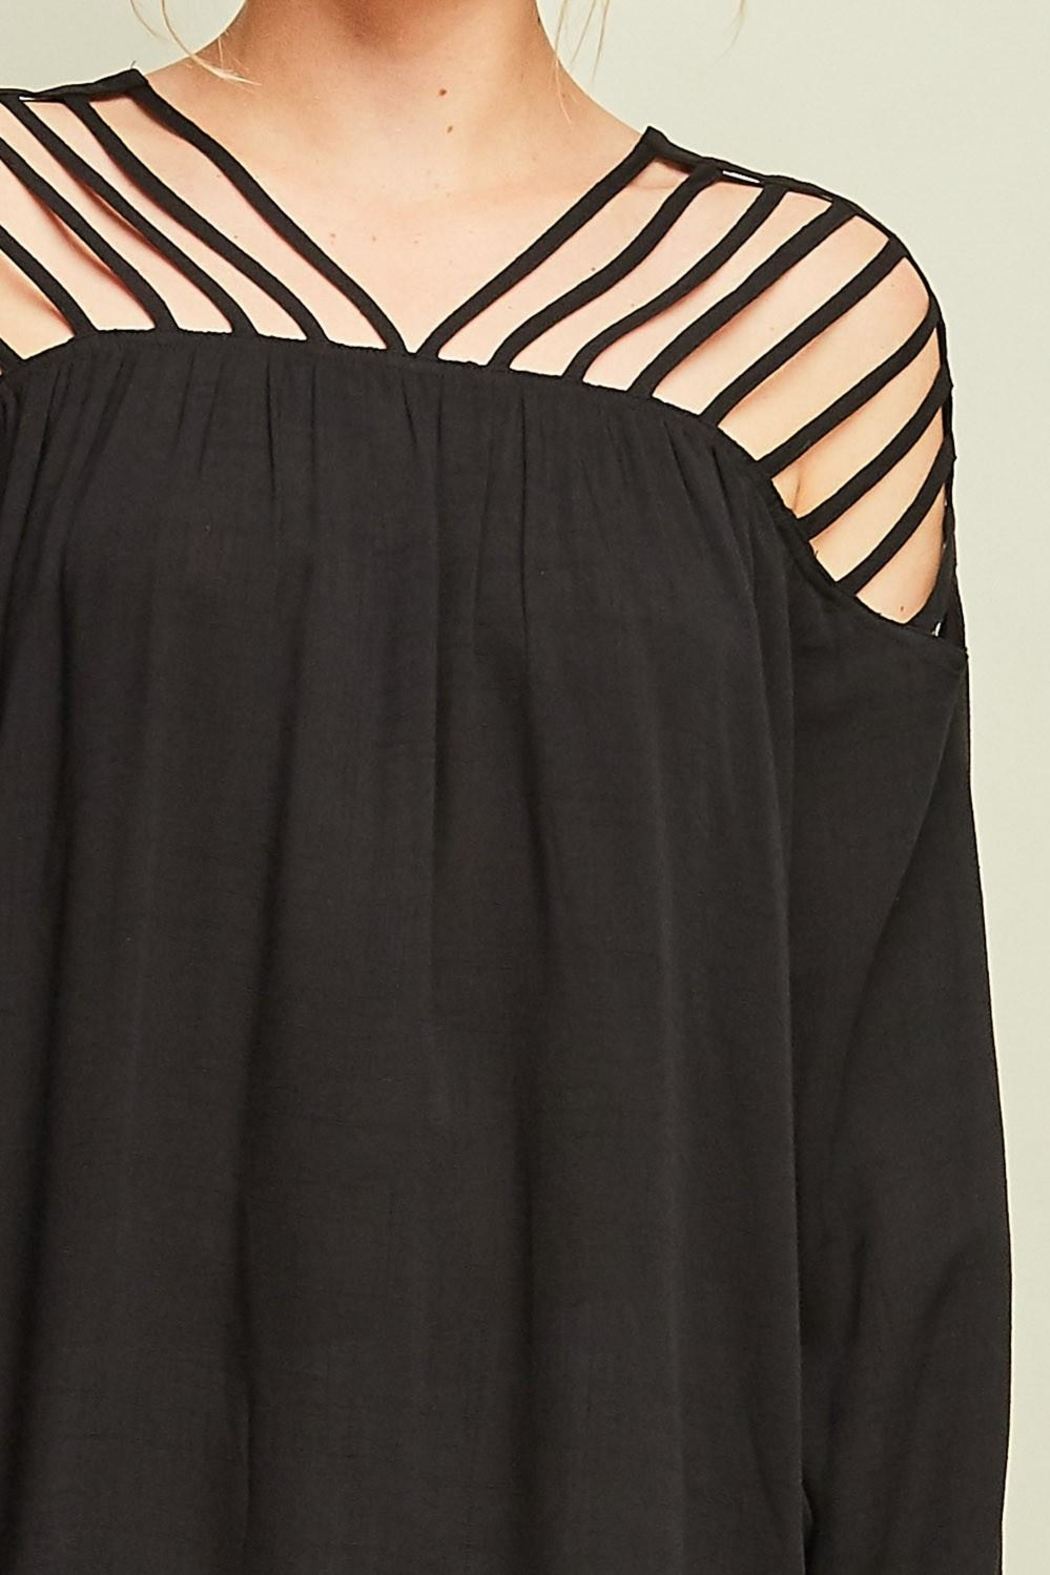 Entro Dressy Cutout Top - Side Cropped Image